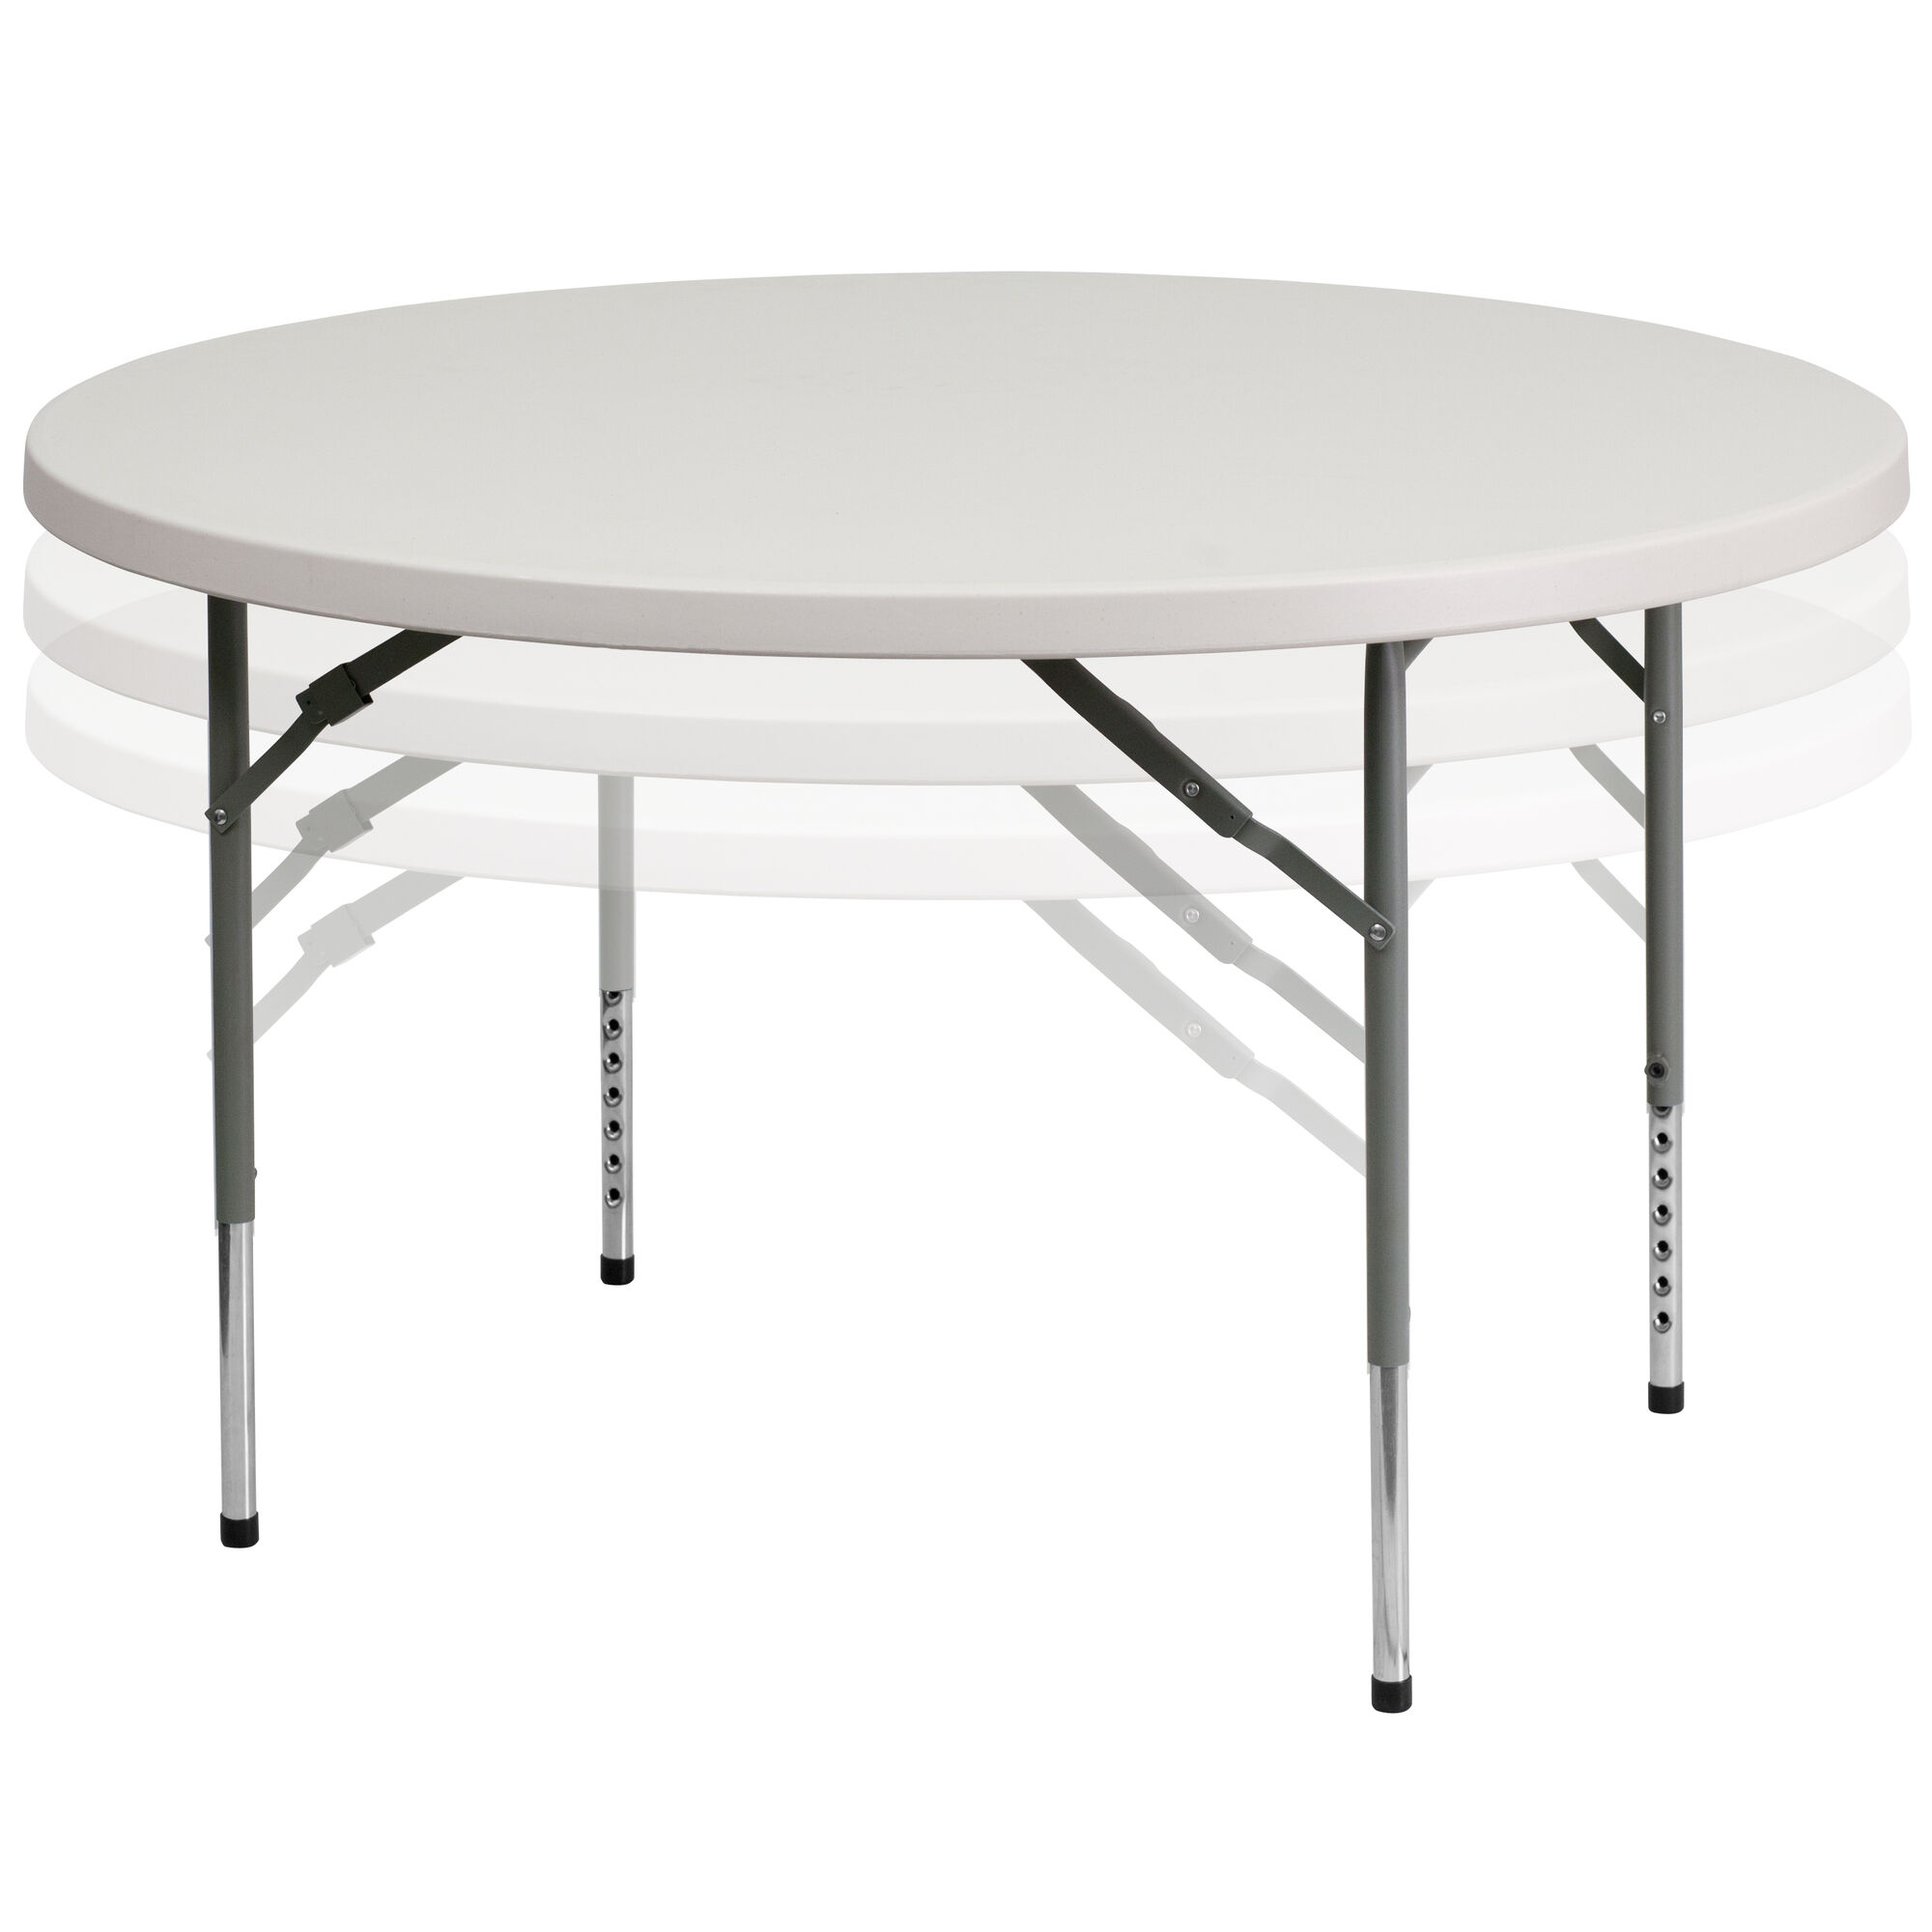 Office Star Banquet Folding Table Designs